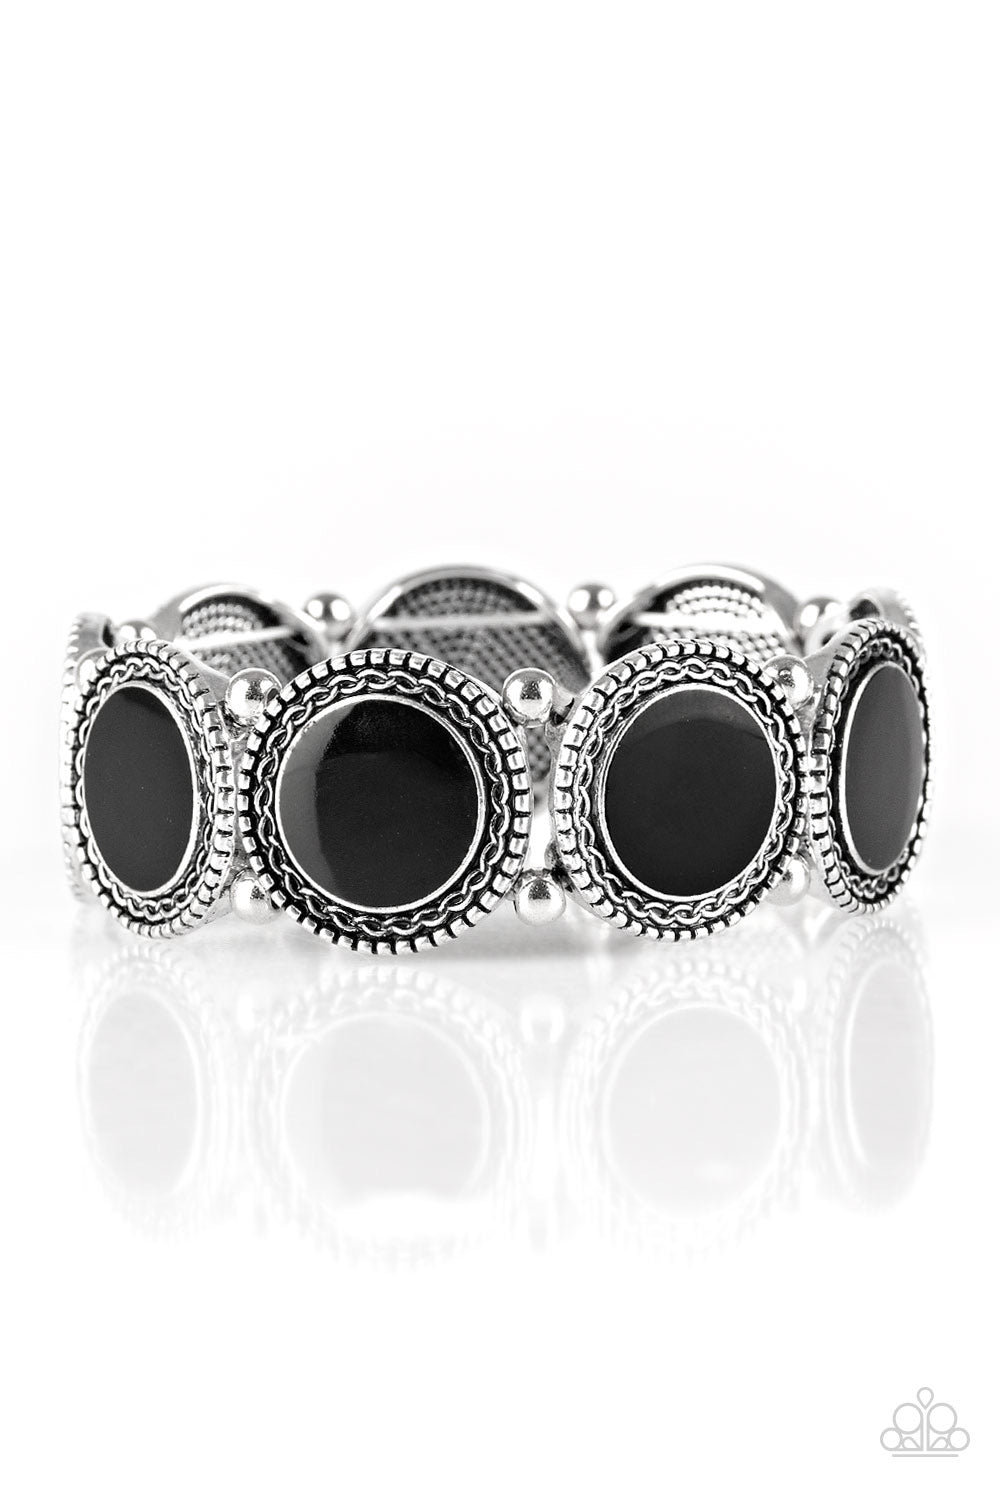 Paparazzi Girls Getaway - Black Bracelet